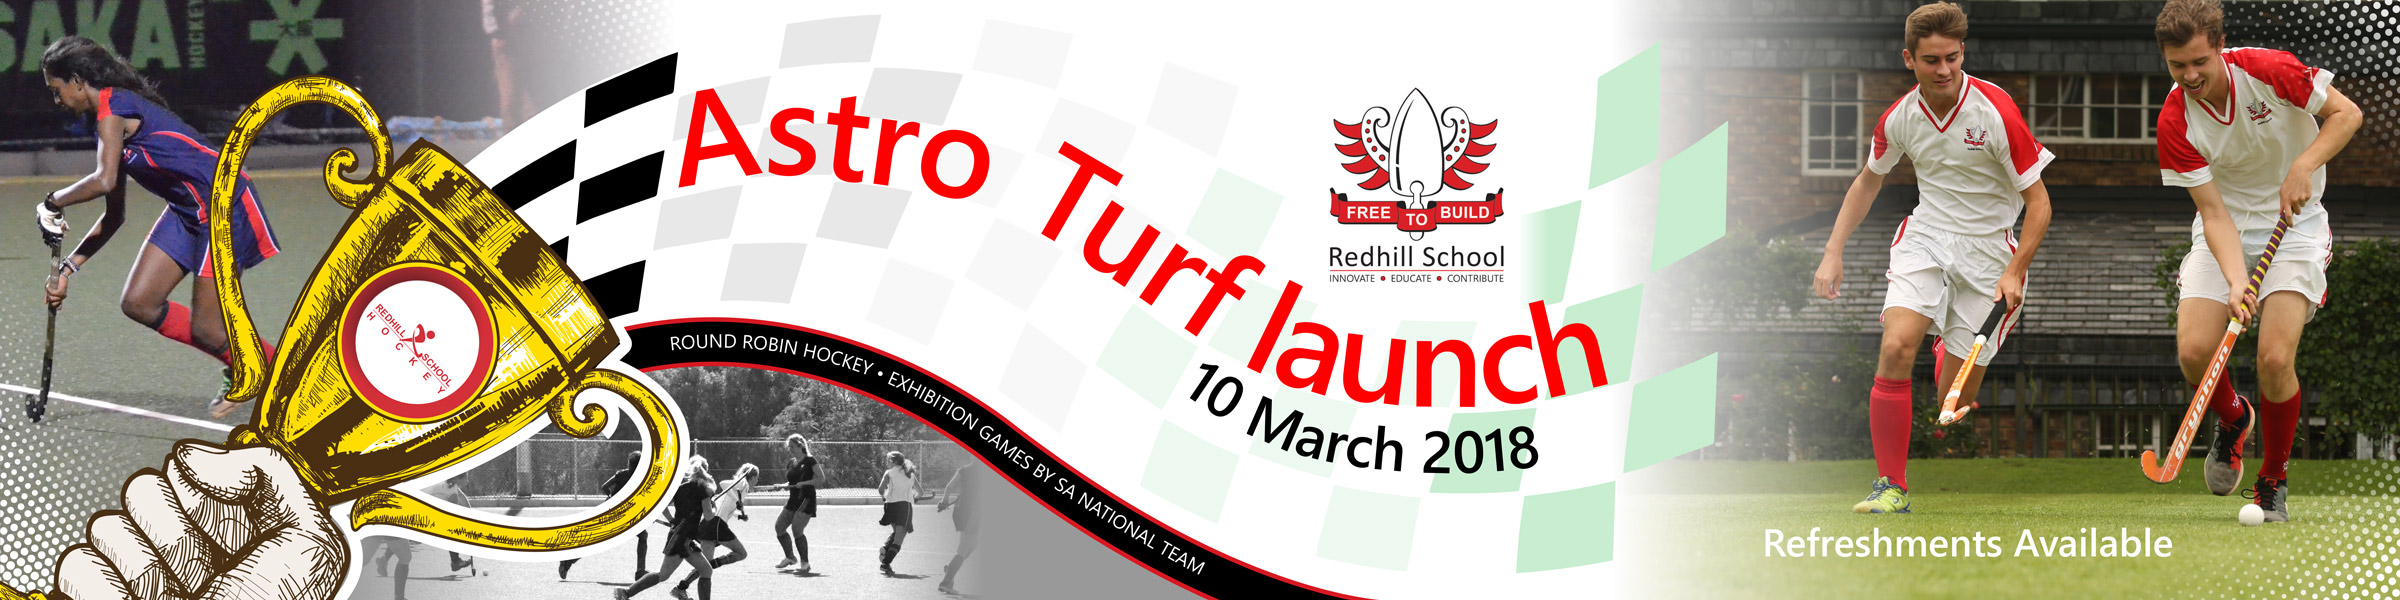 astro_turf_launch_event.jpg